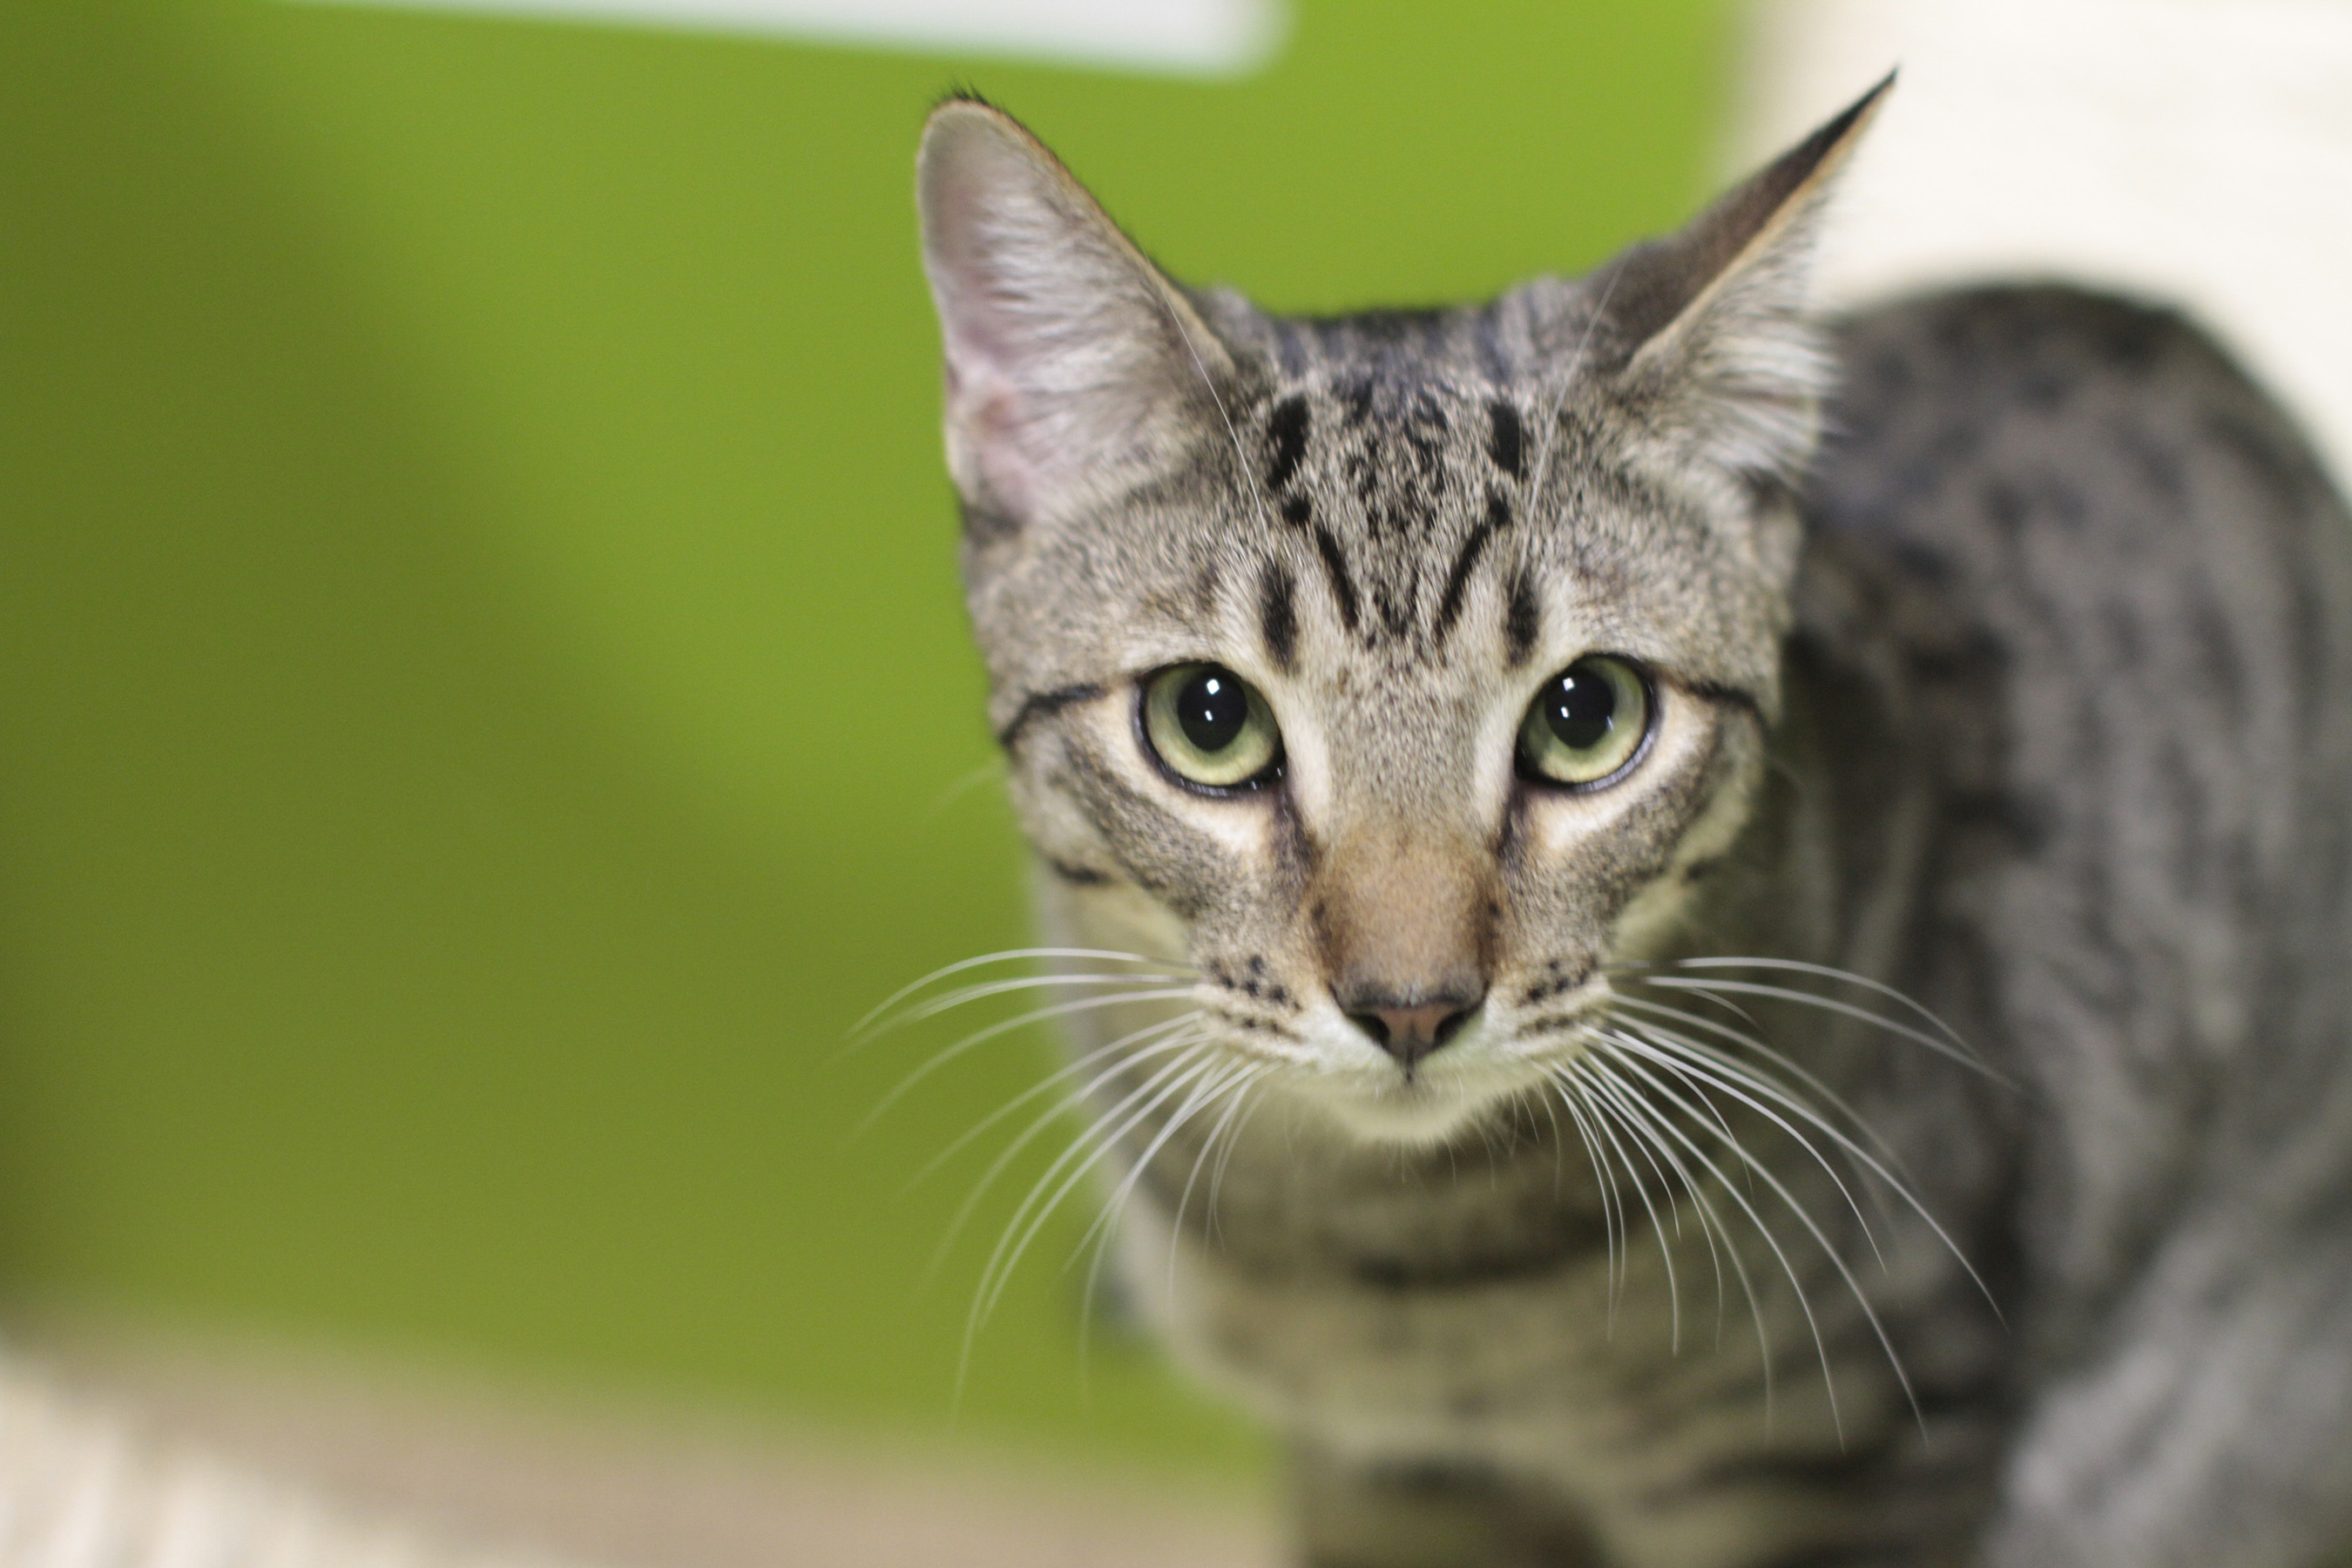 Eighty-eight percent of millennials consider themselves similar to their cat, and nearly the same number say ...